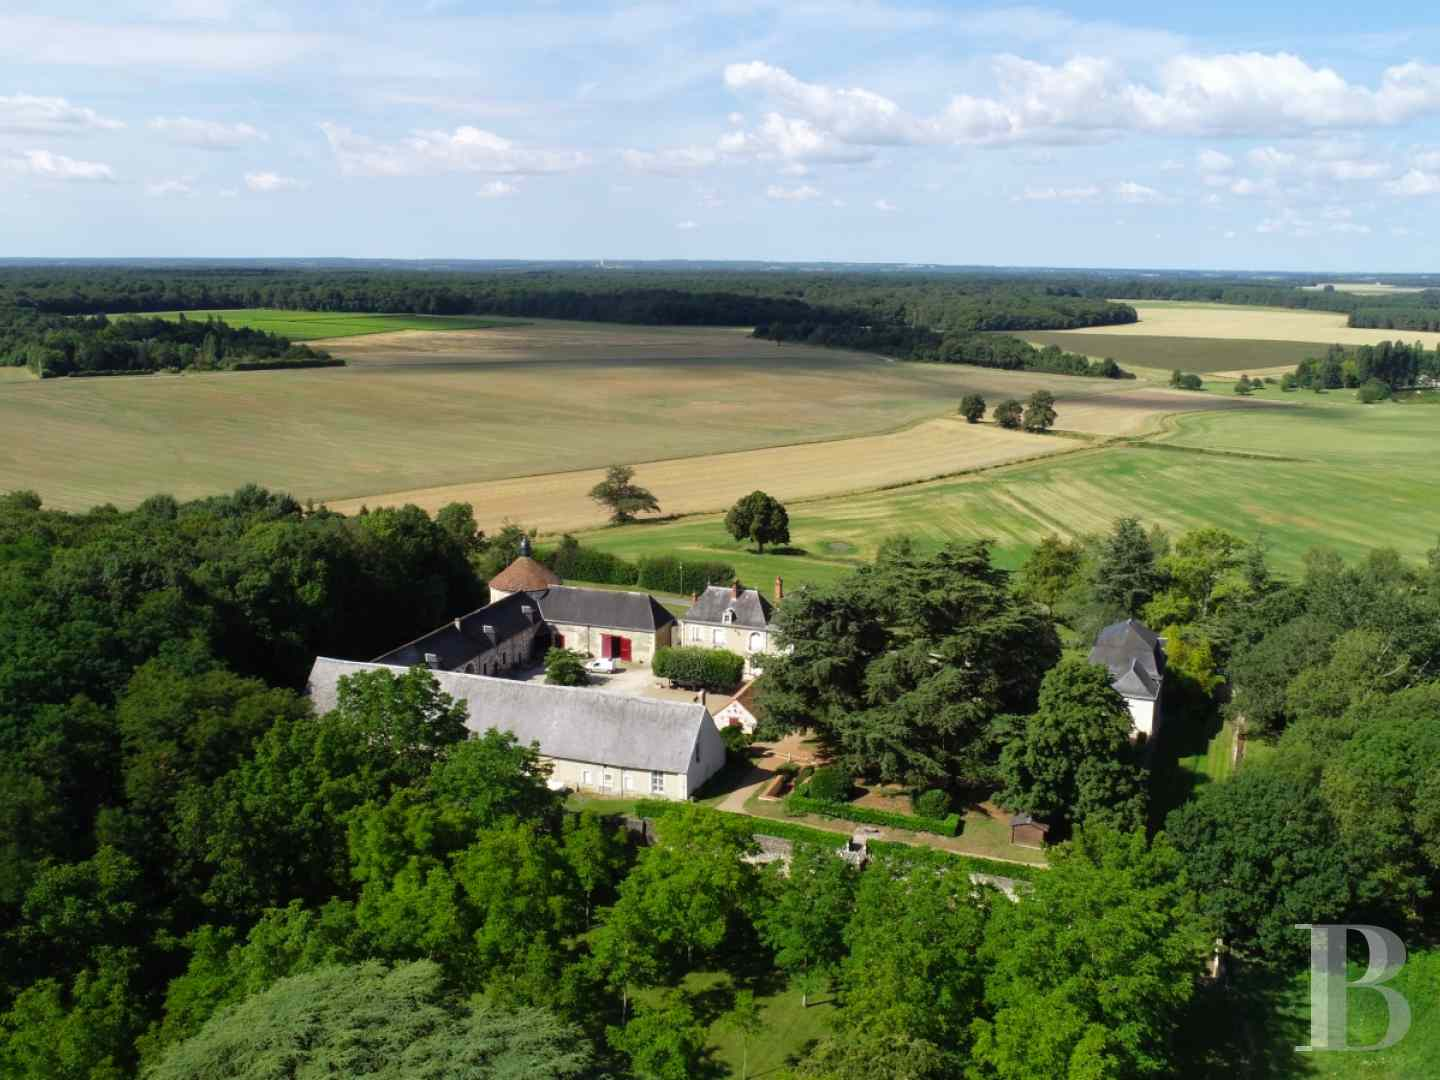 property for sale France center val de loire hunting grounds - 1 zoom